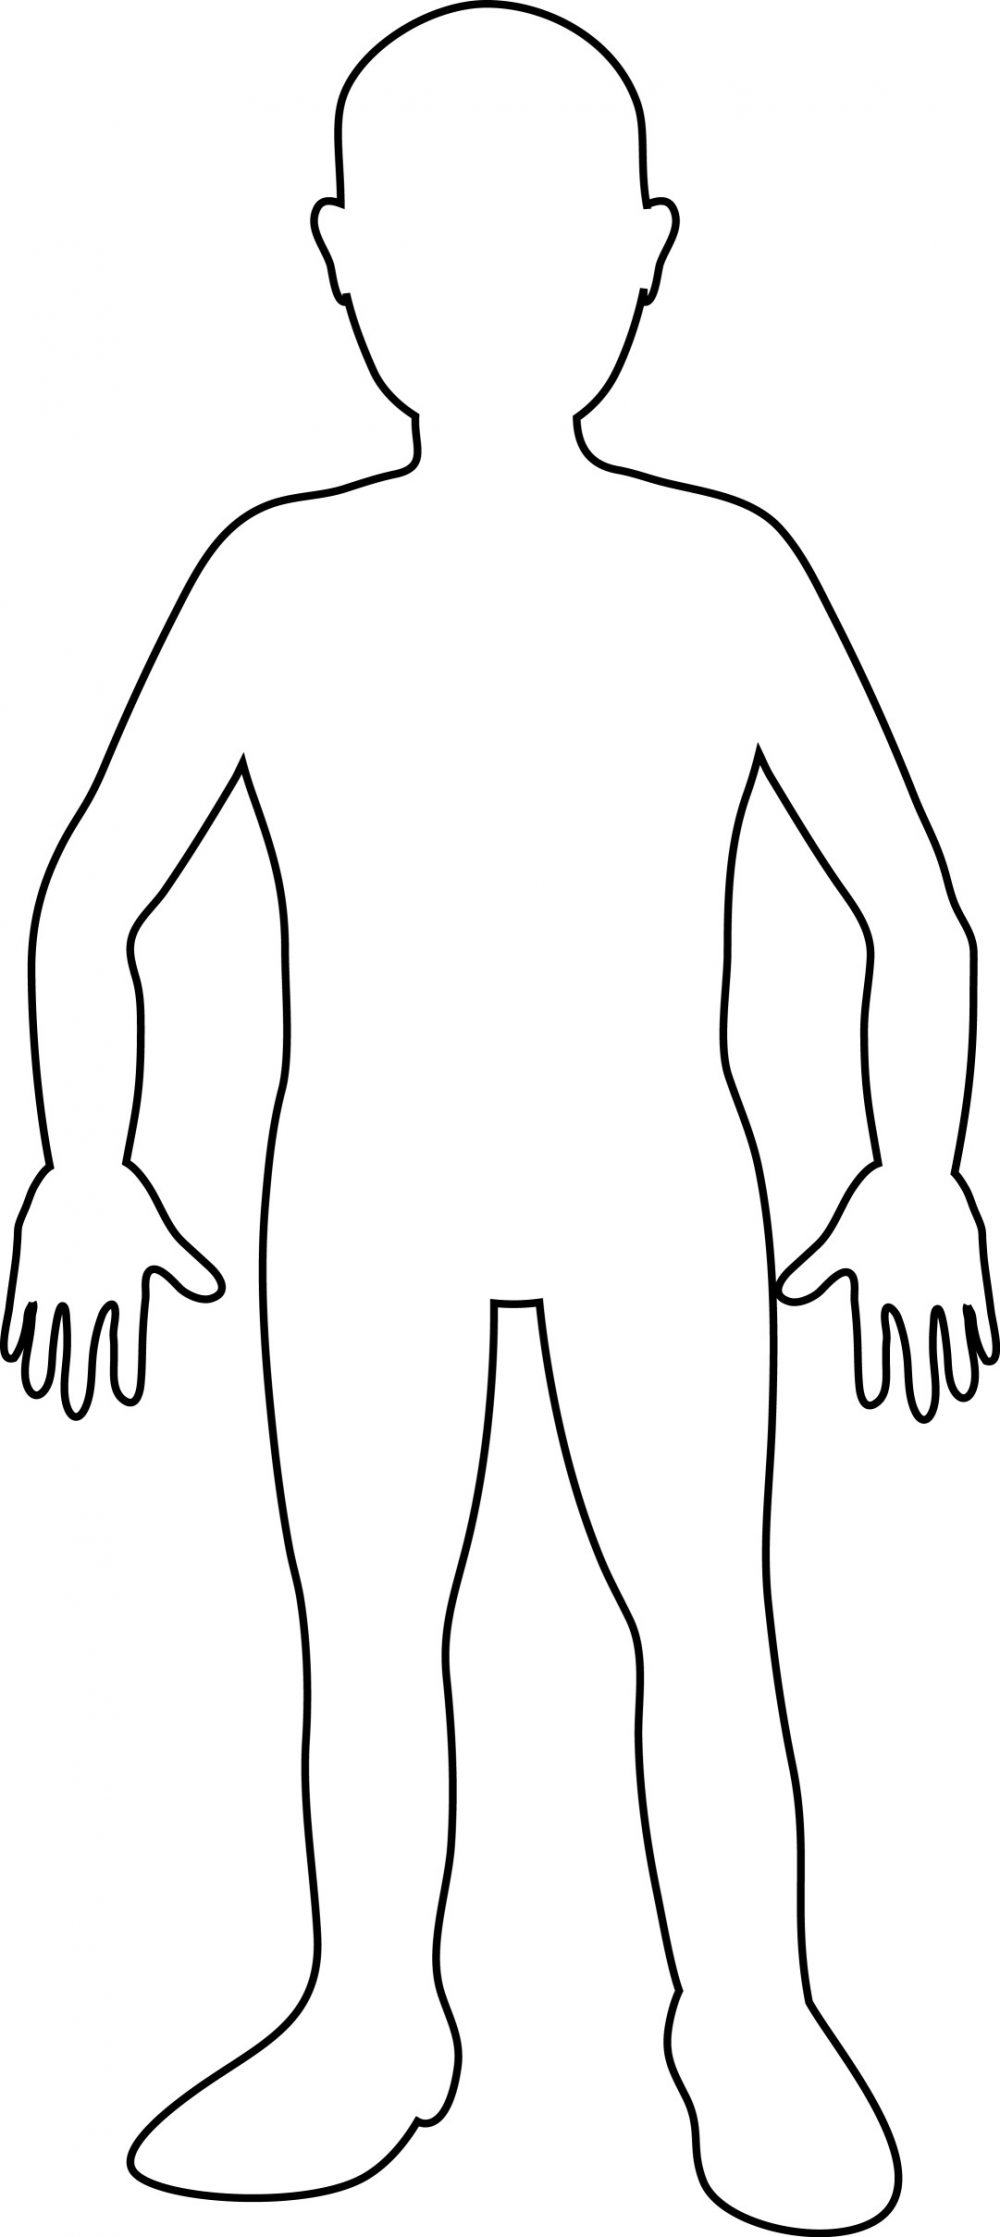 Body outline tool for stress | SelfharmUk